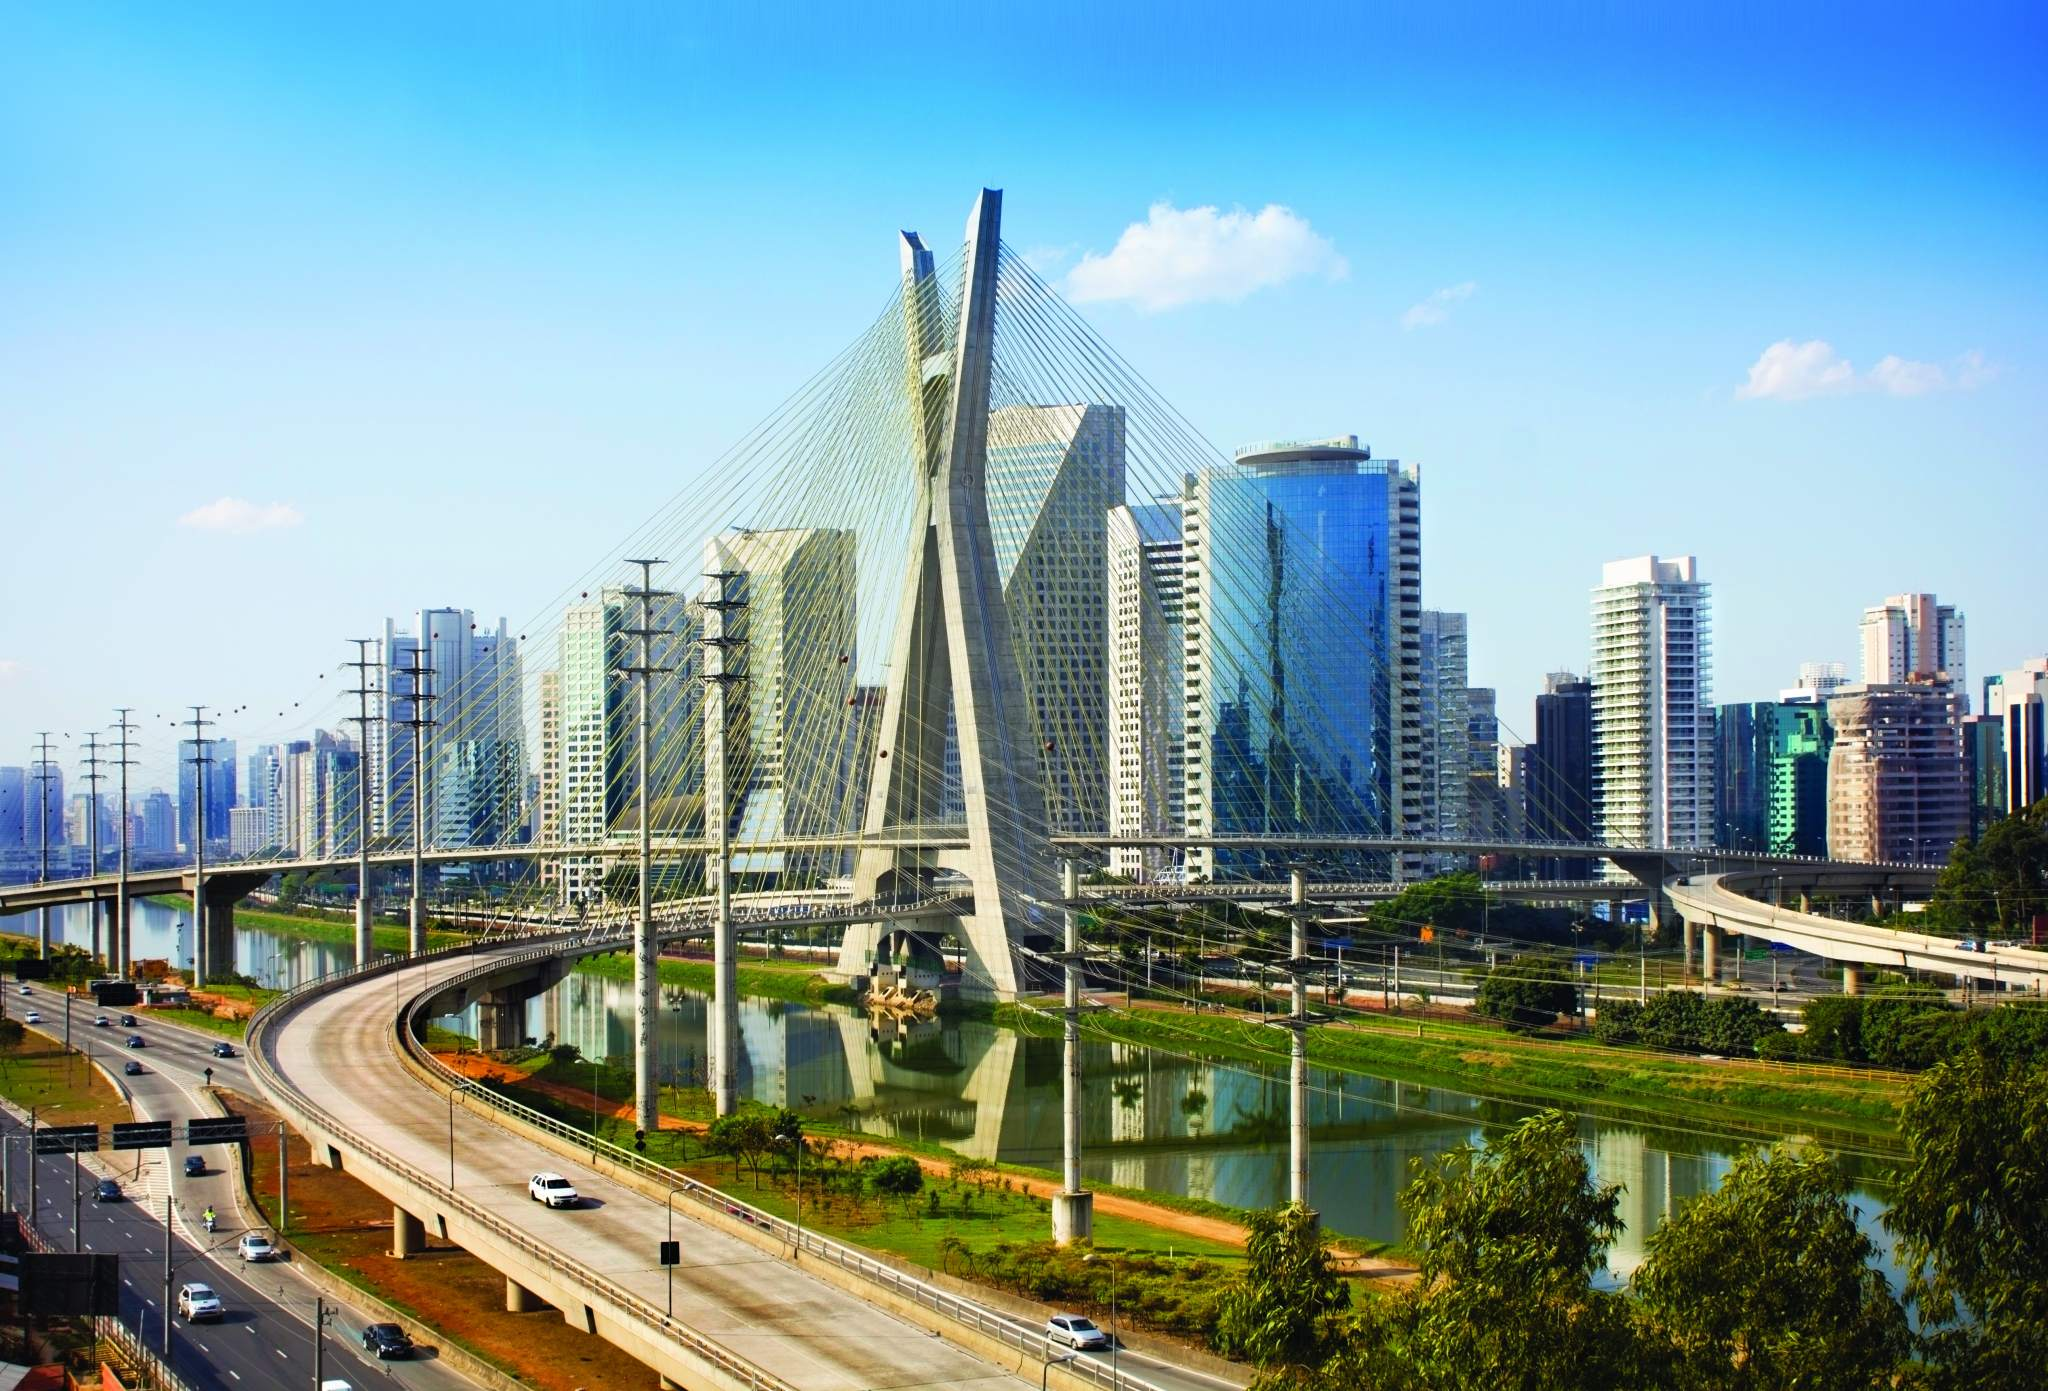 Here might appear a Sao Paulo landscape